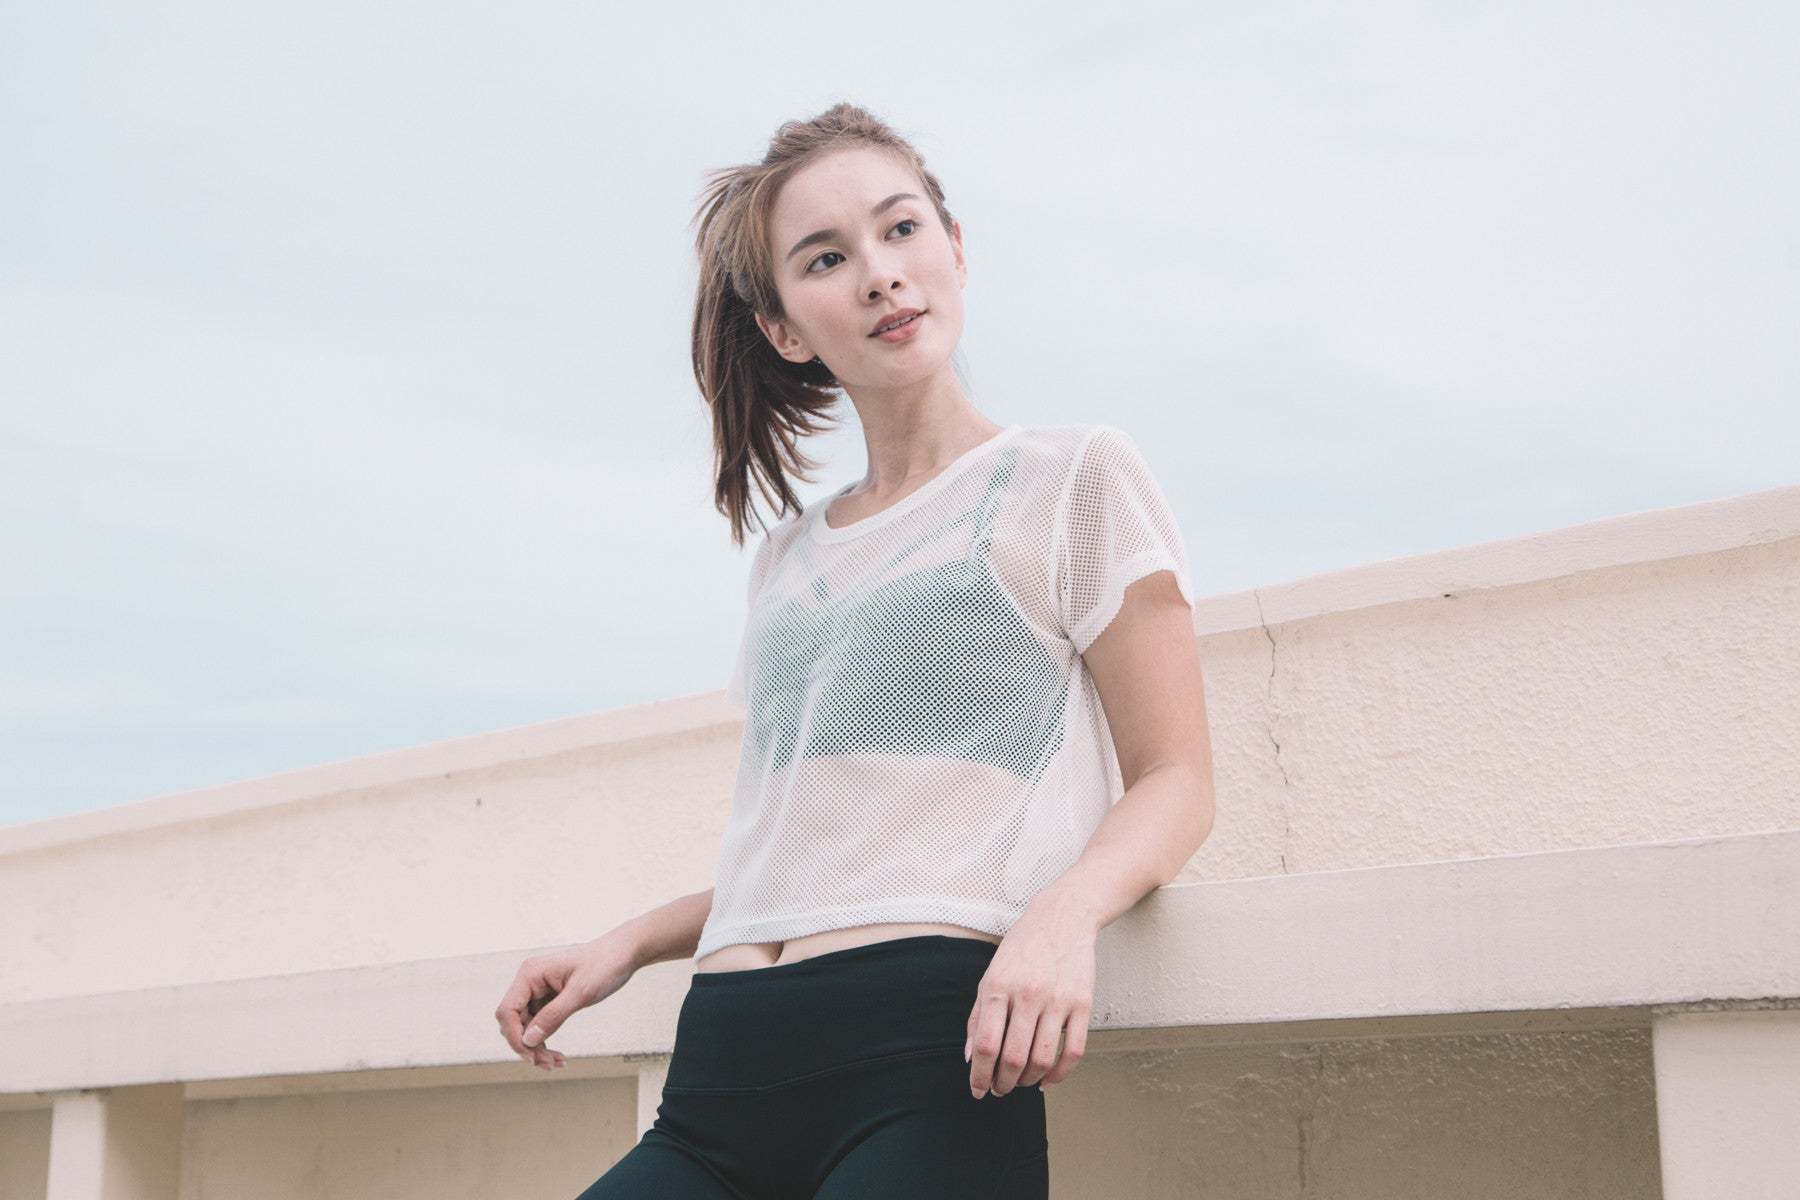 [Restocked] Mesh Sports Top in White